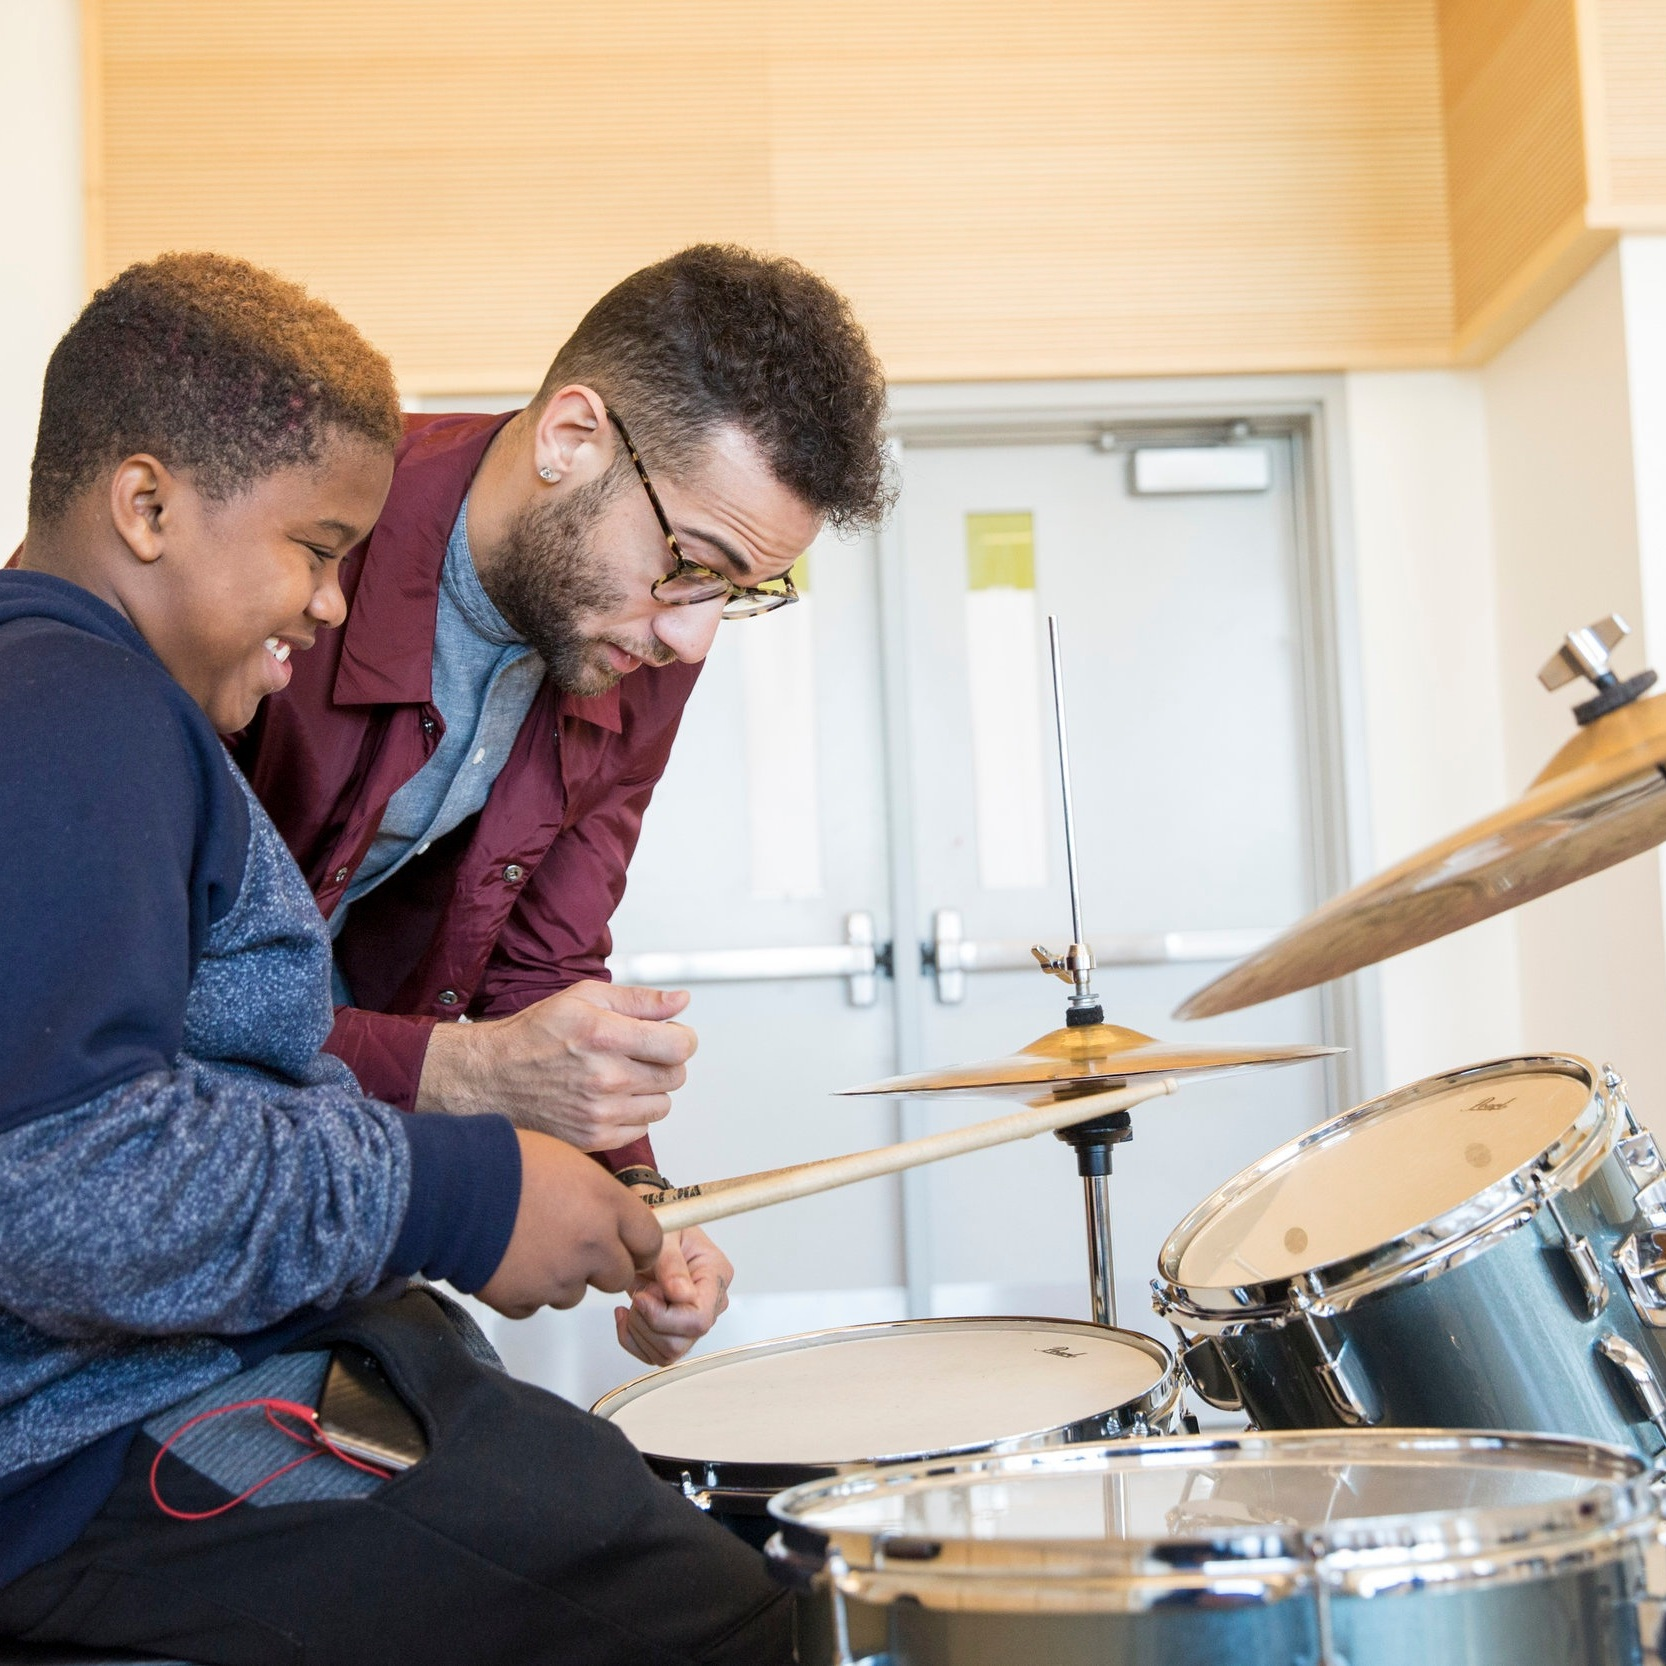 Start them on the right note - Arts education is a key factor in helping California's next generation succeed. Participation in the arts boosts students' overall academic achievement, social engagement, attendance and graduation rates, and college and workforce readiness.Learn More